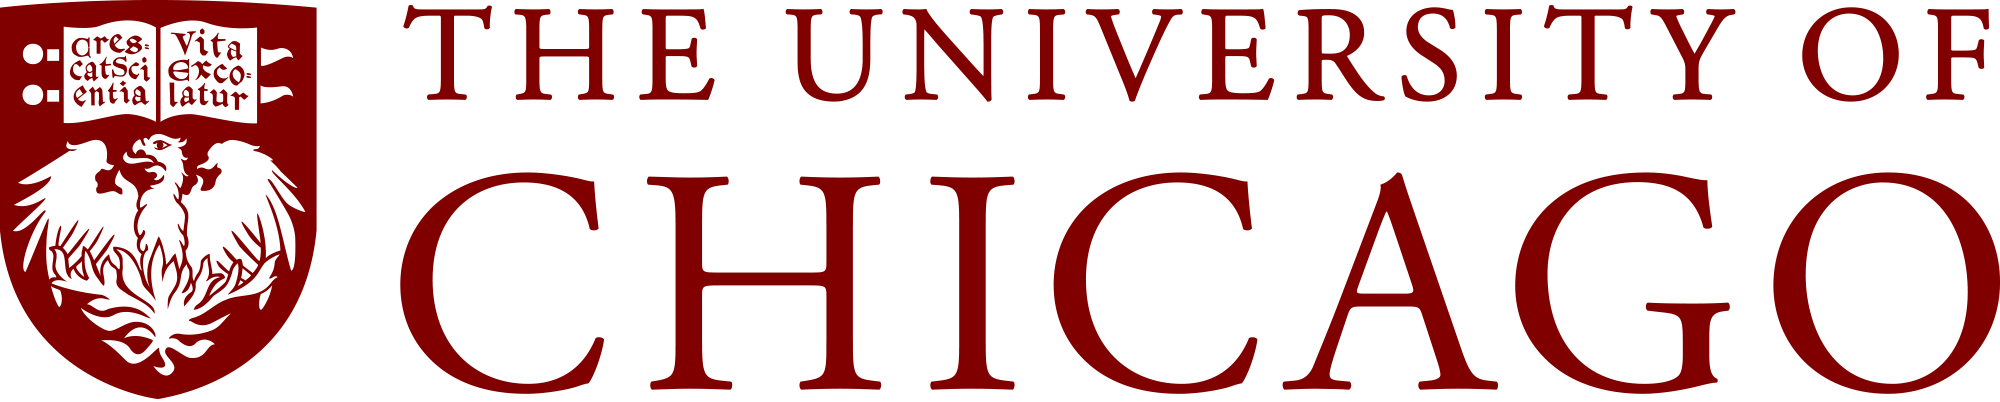 Schoolhouse.world is working with University of Chicago for college admissions.